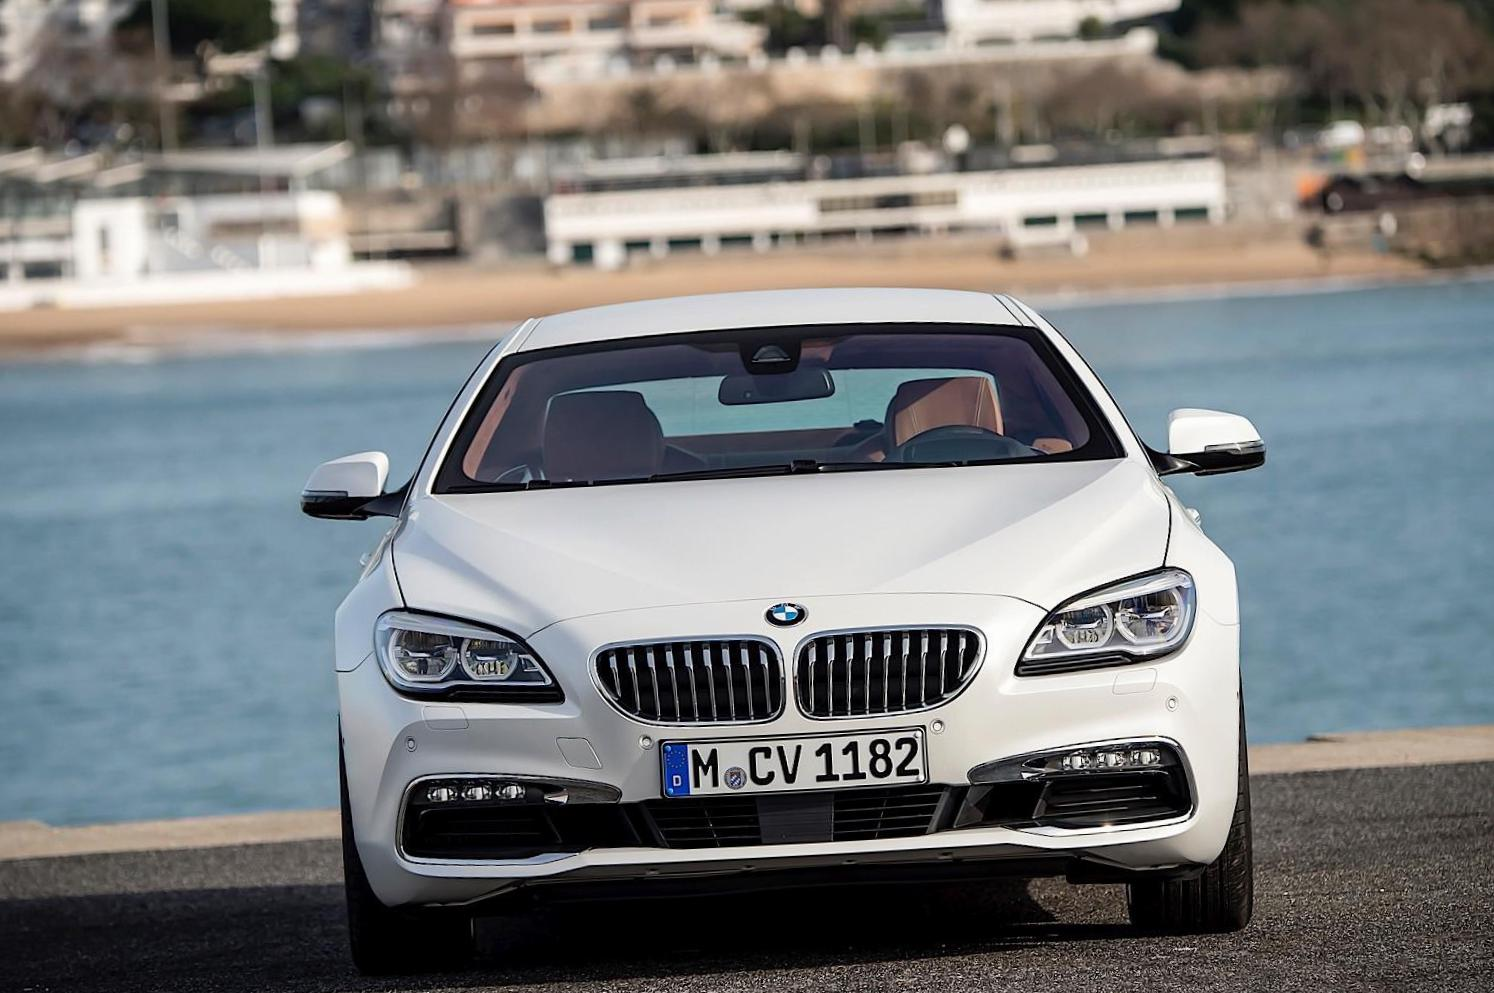 BMW 6 Series Gran Coupe (F06) review 2013